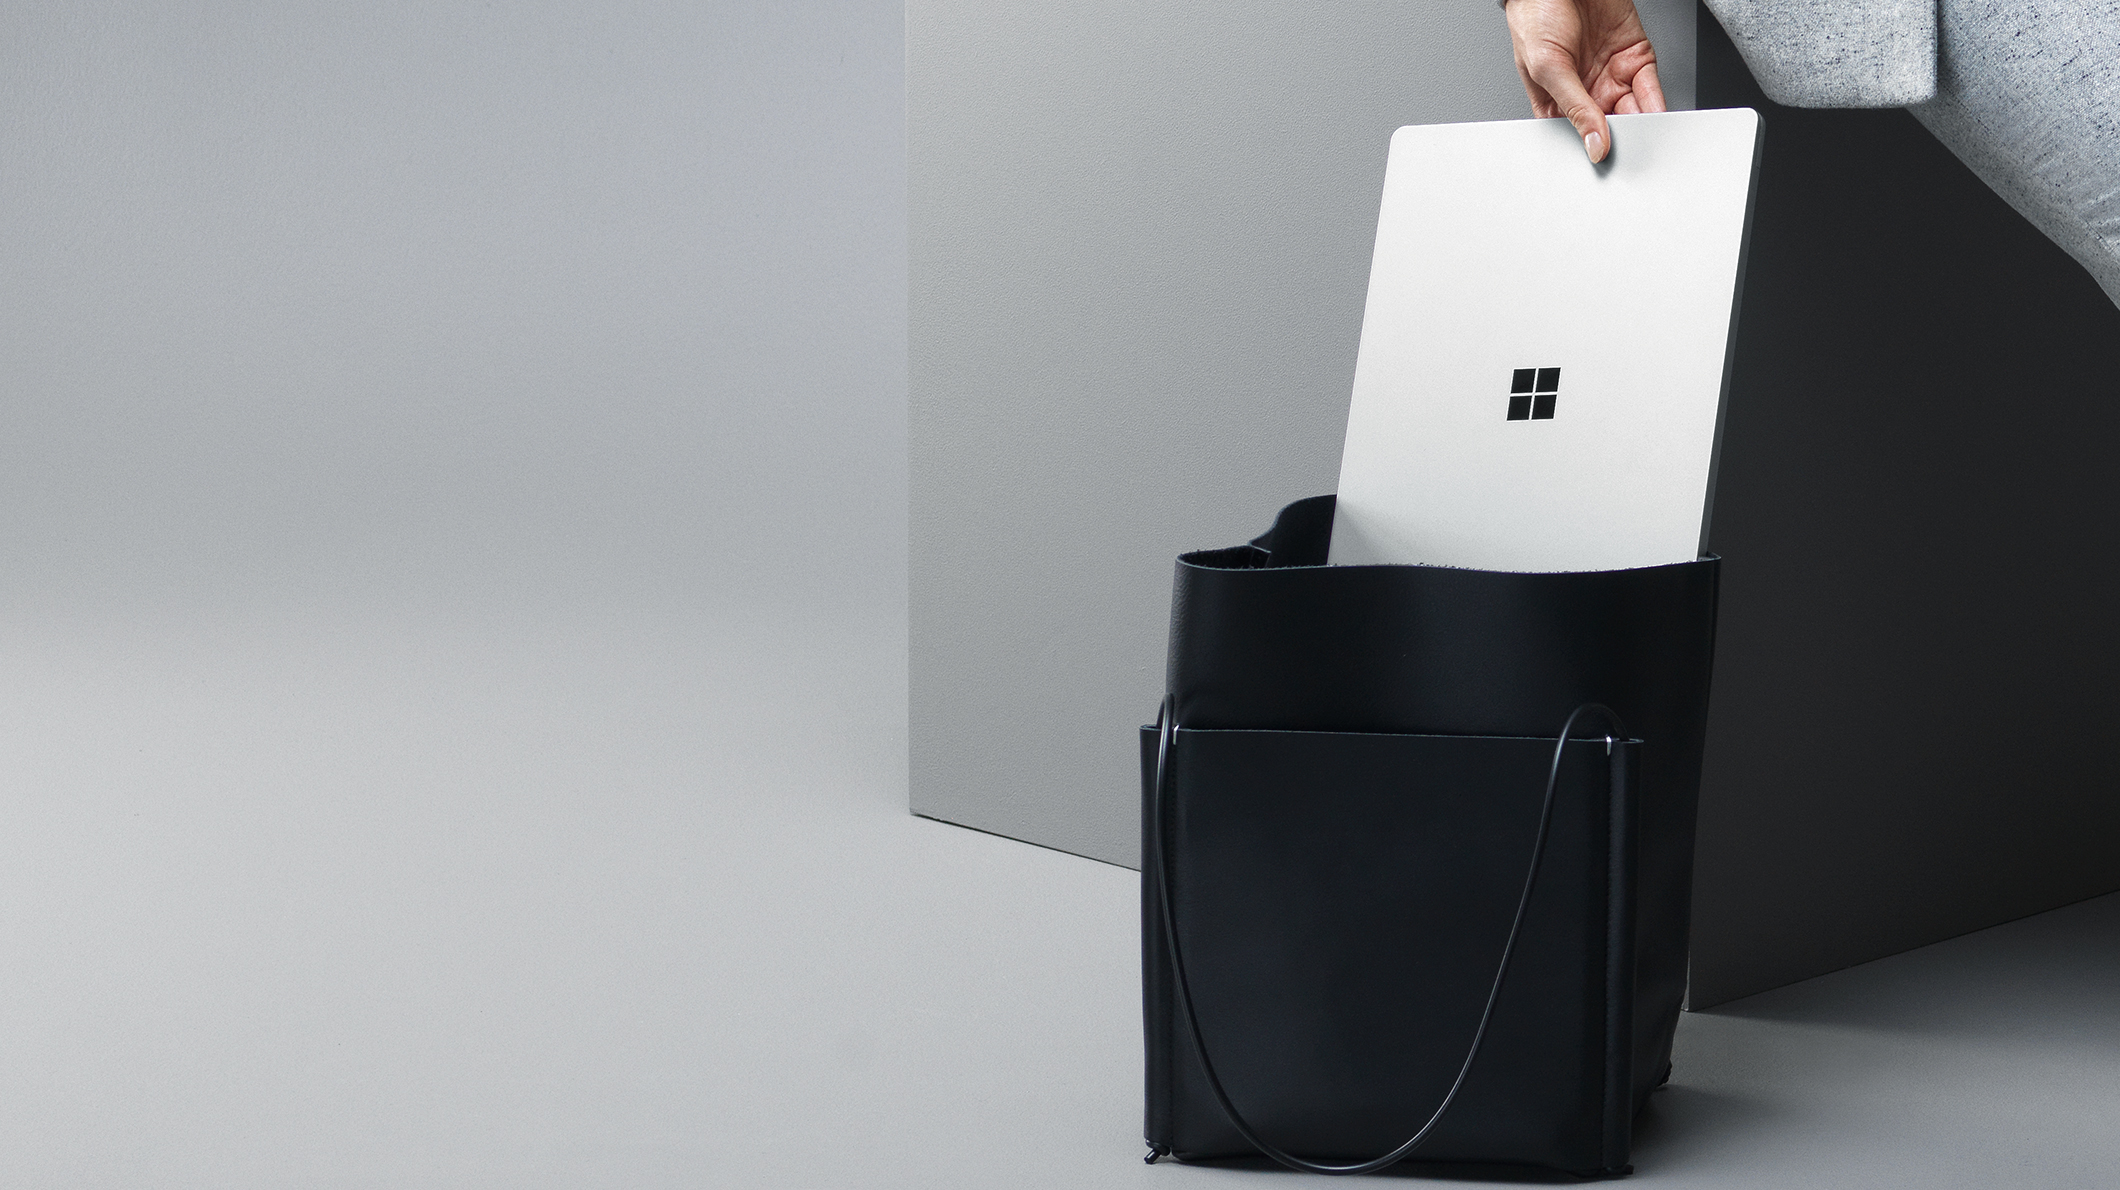 A woman places a Surface Laptop in a bag